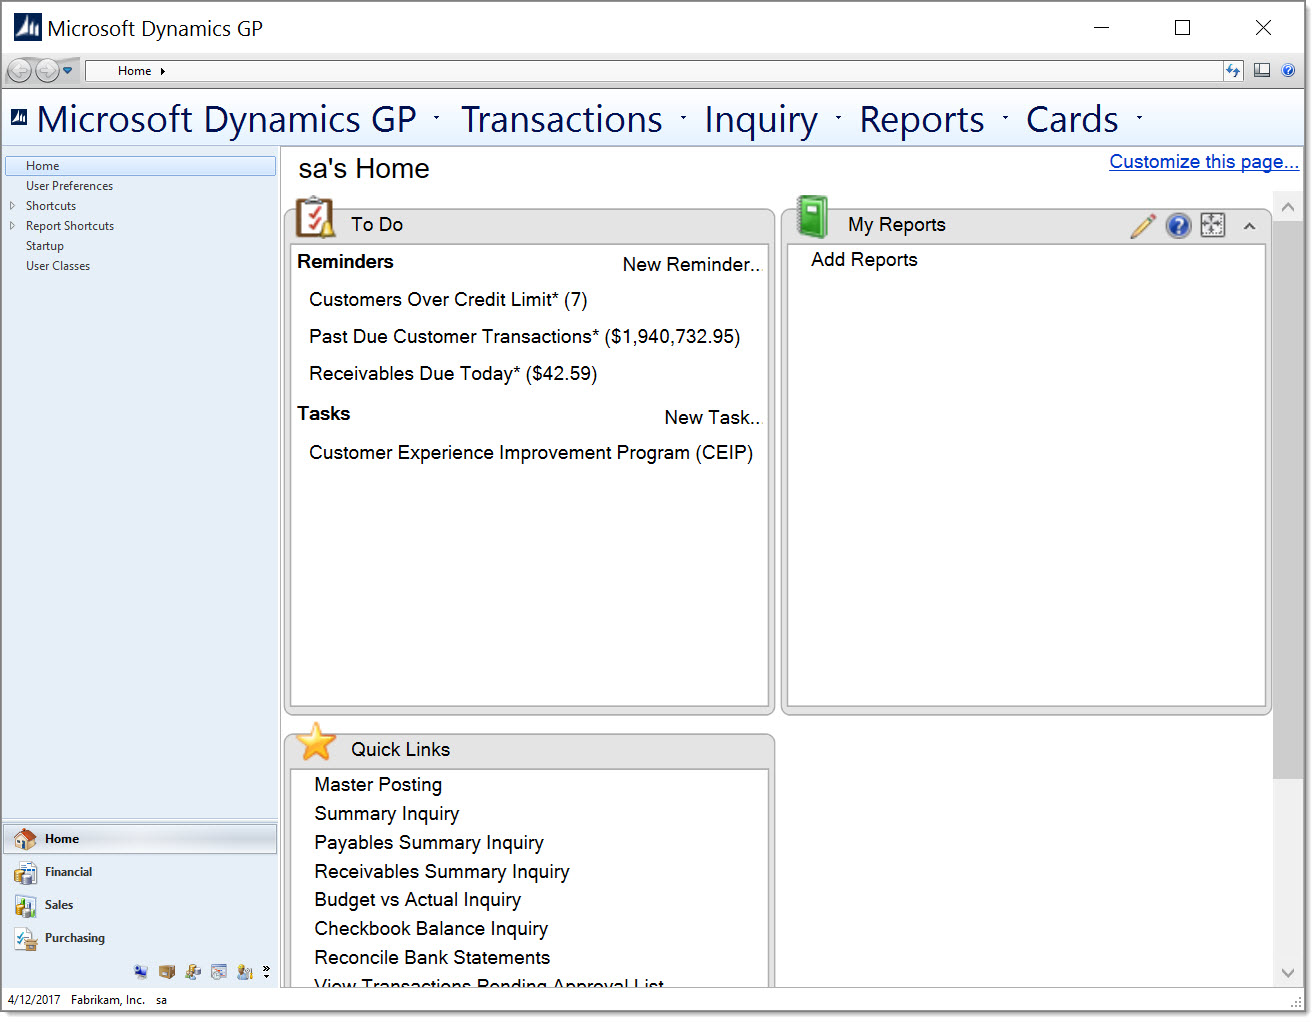 Fix Dynamics GP scaling and font size issues on high DPI displays